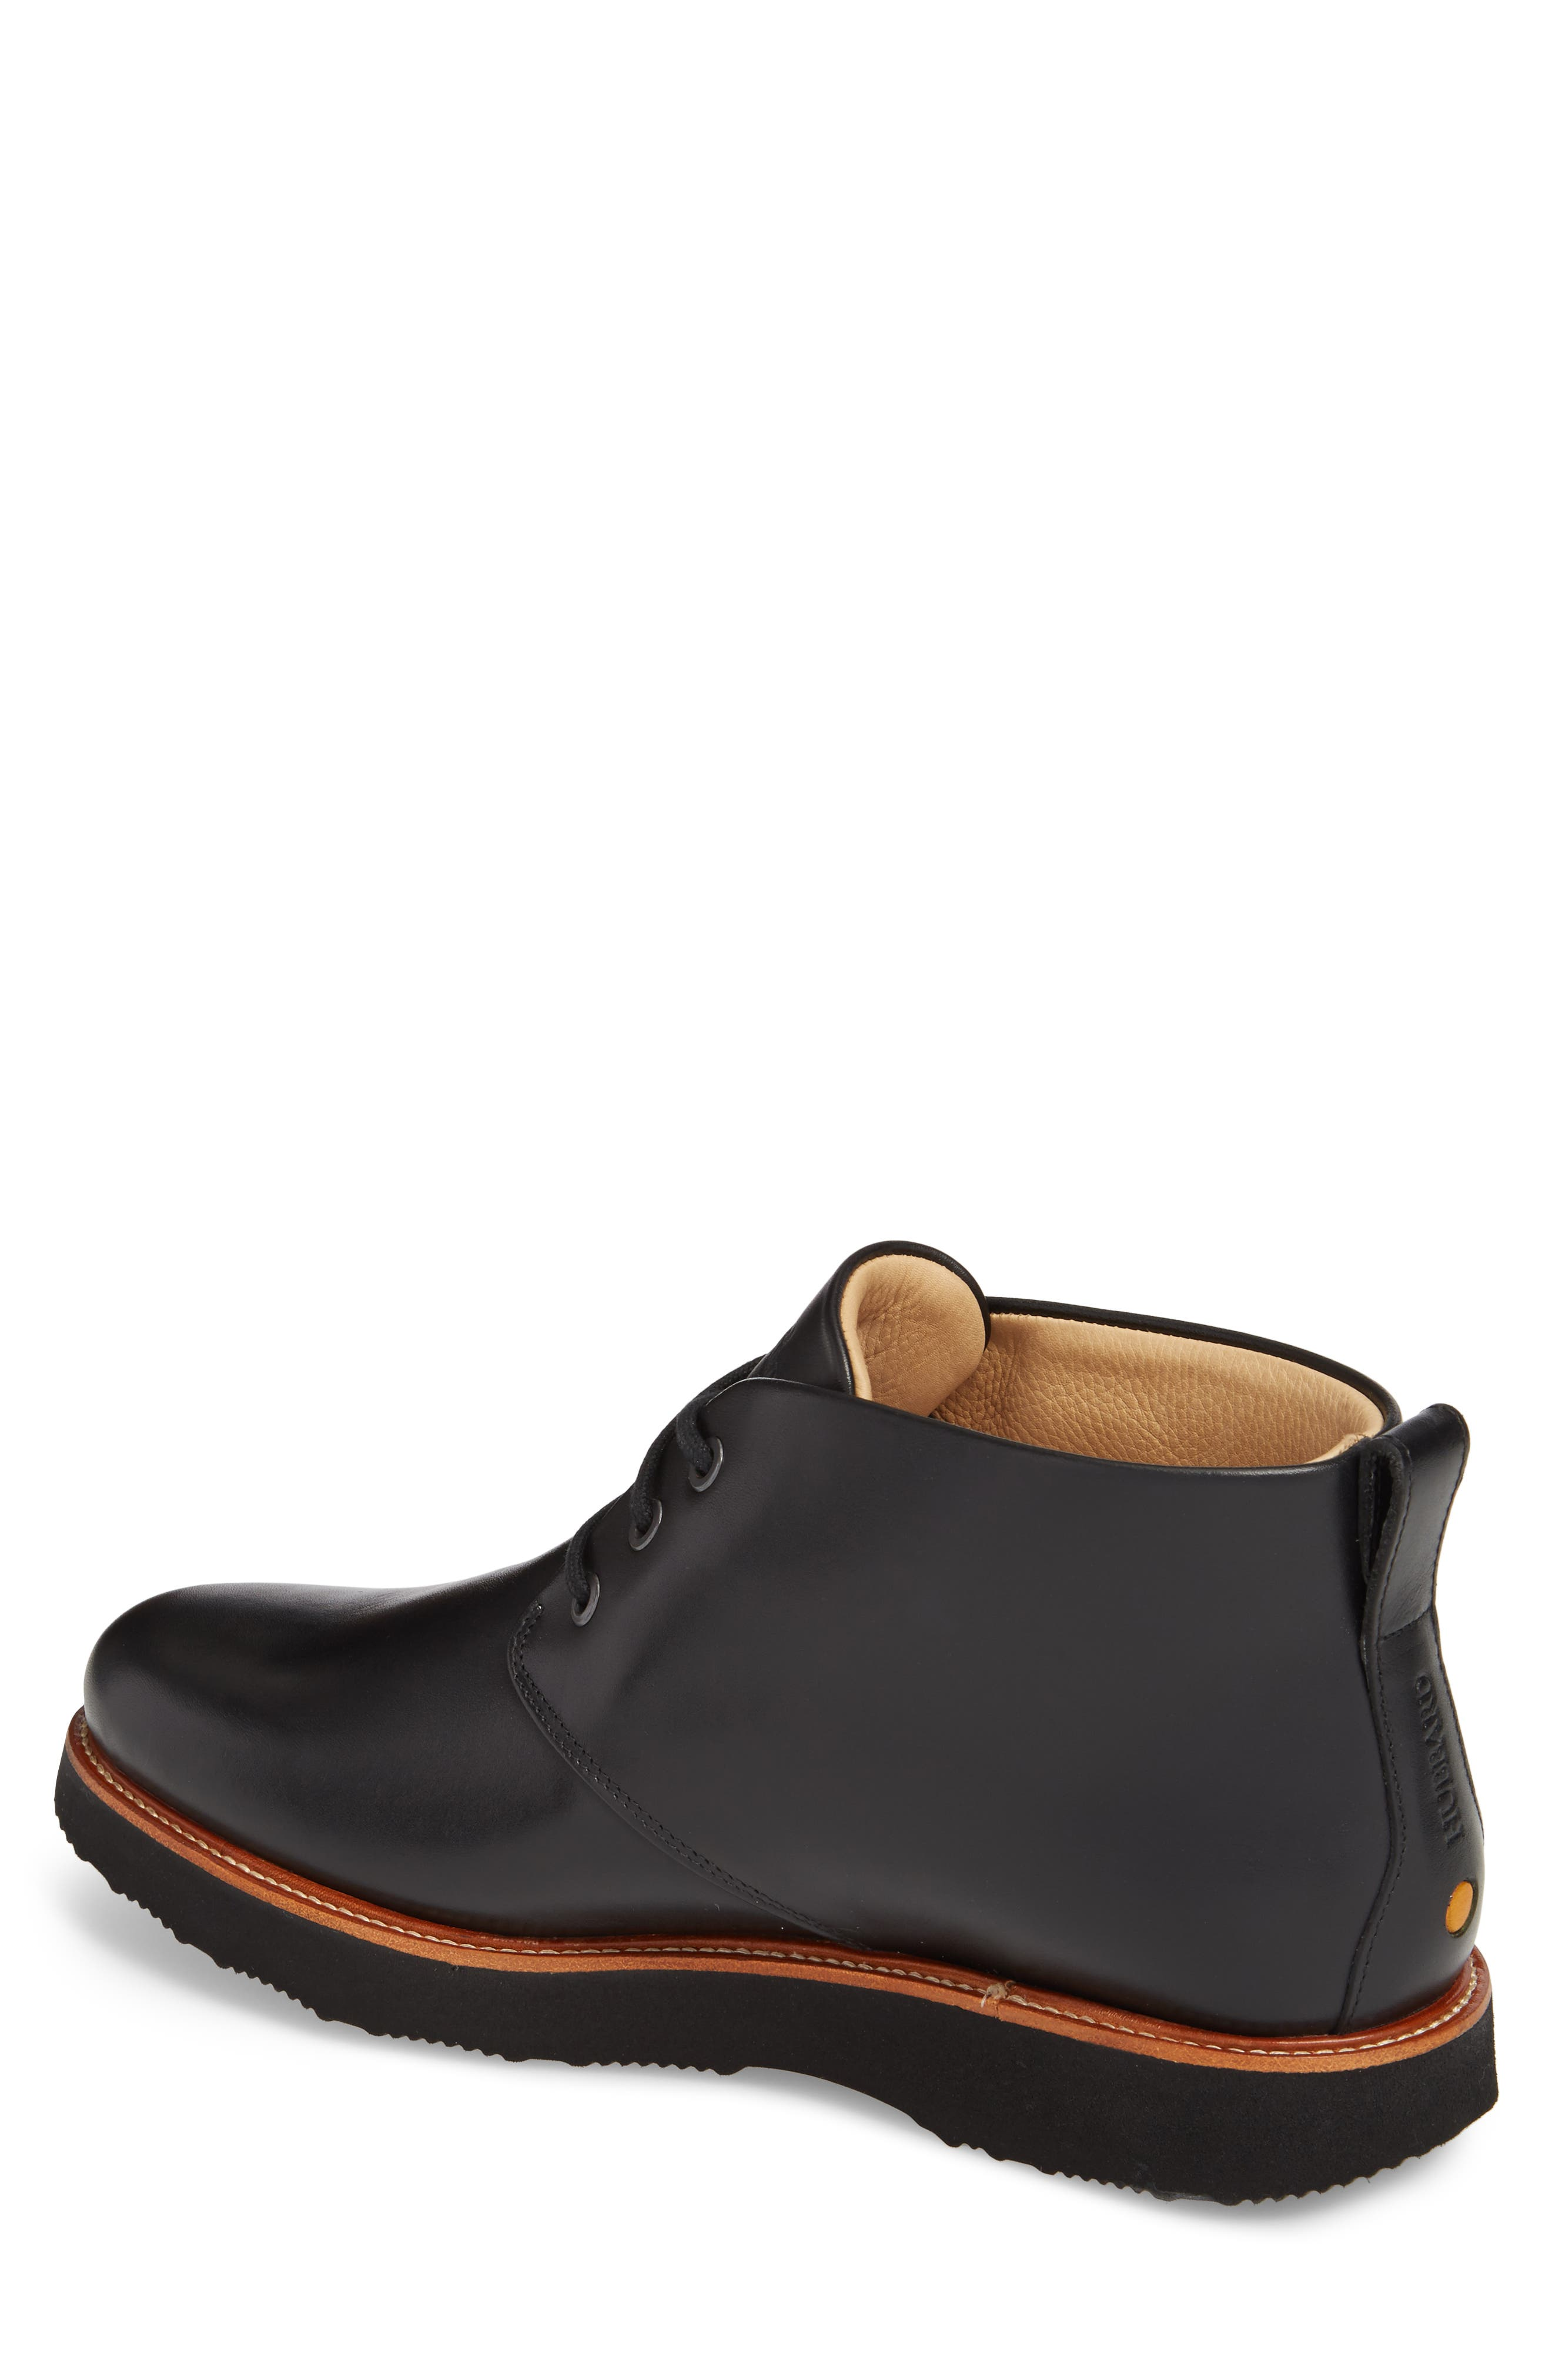 Alternate Image 2  - Samuel Hubbard Re-Boot Waterproof Gore-Tex® Chukka Boot (Men)